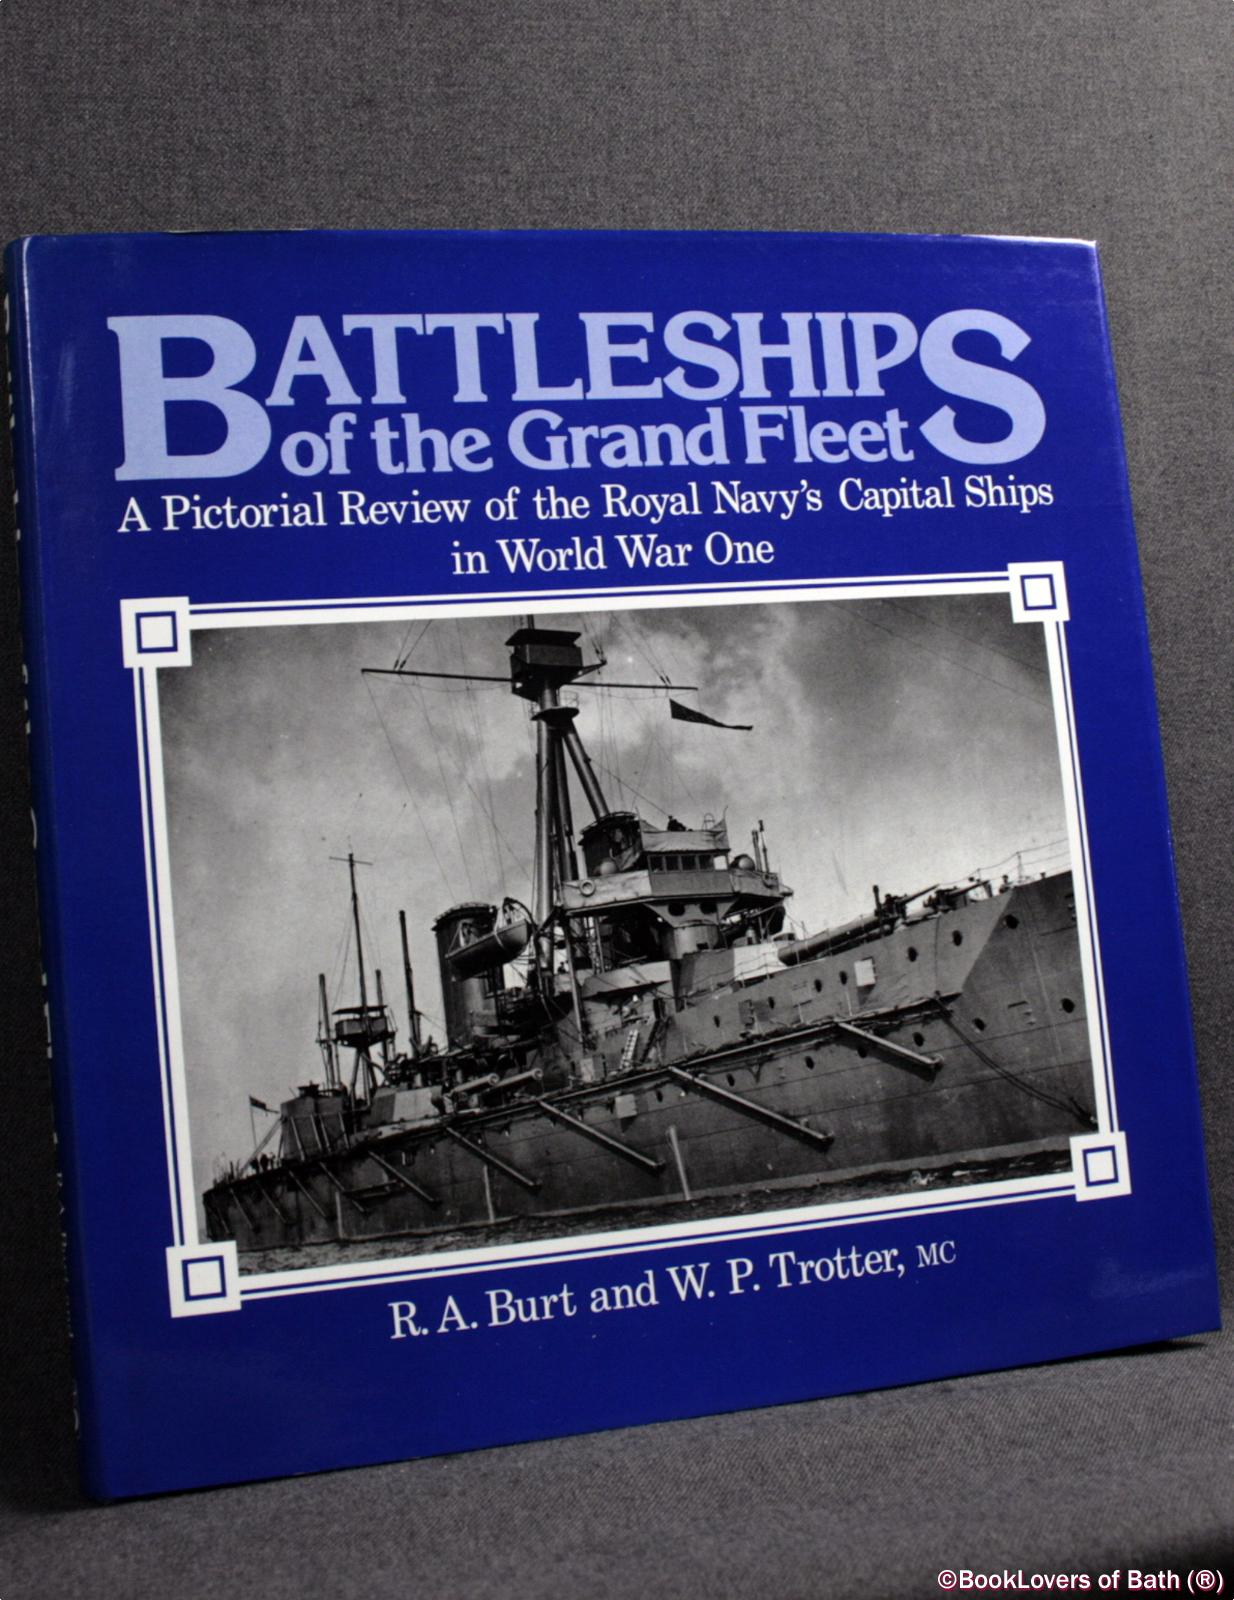 Battleships of the Grand Fleet: A Pictorial Review of the Royal Navy's Capital Ships in World War One - R. A. Burt & W. P. Trotter